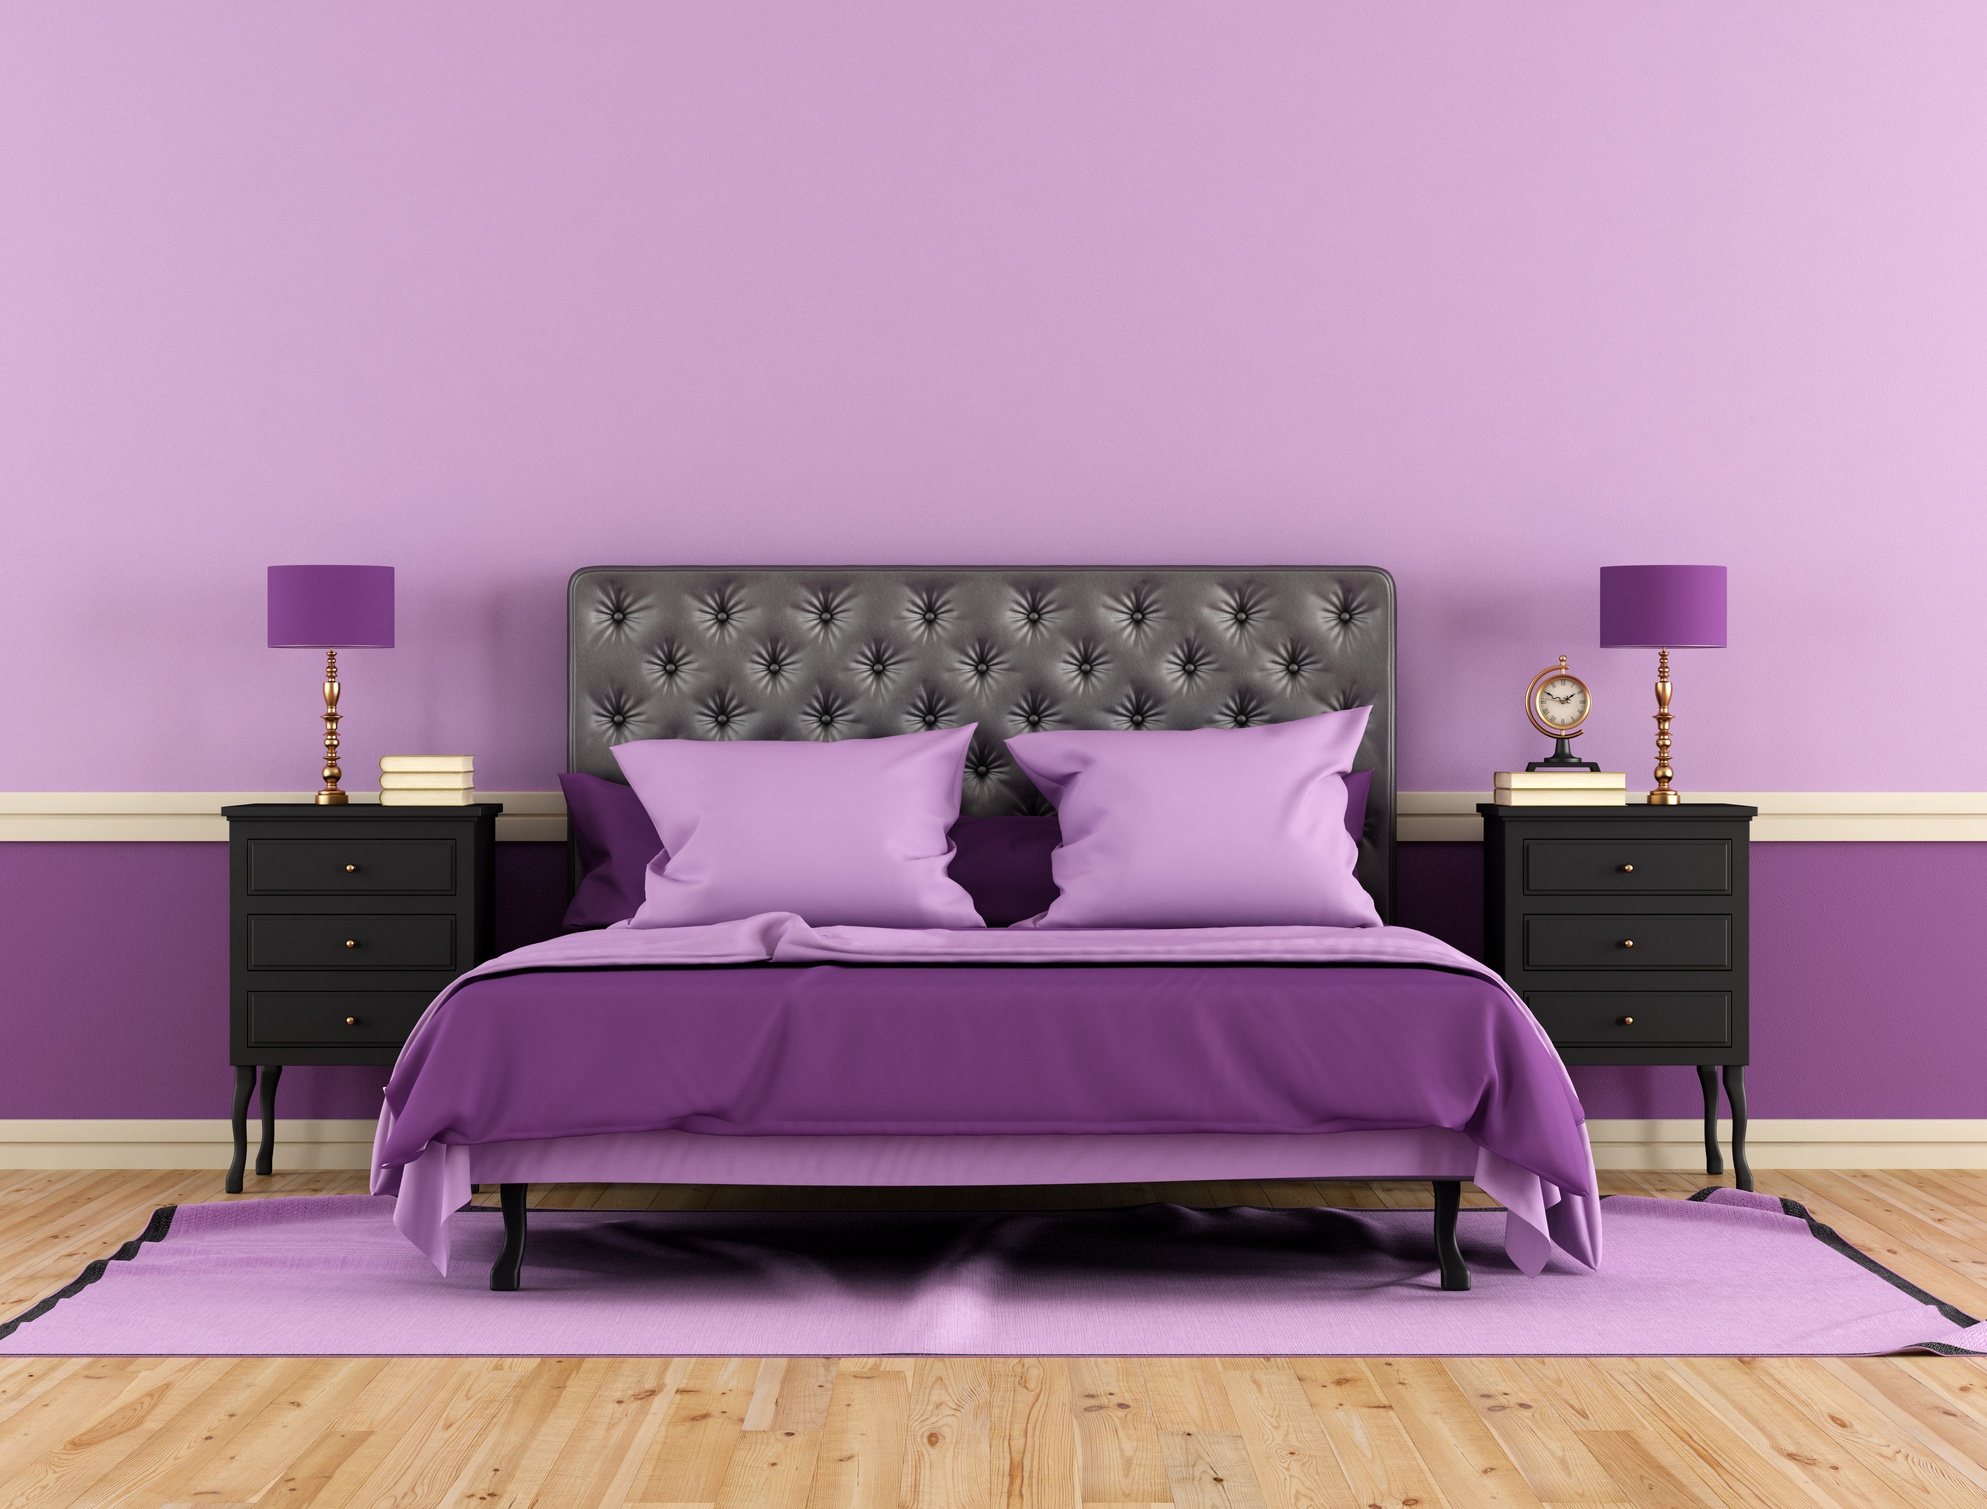 Colours For Bedroom 2018. Bedroom with purple bed  walls and lamps You re Going to See These Color Trends Everywhere in 2018